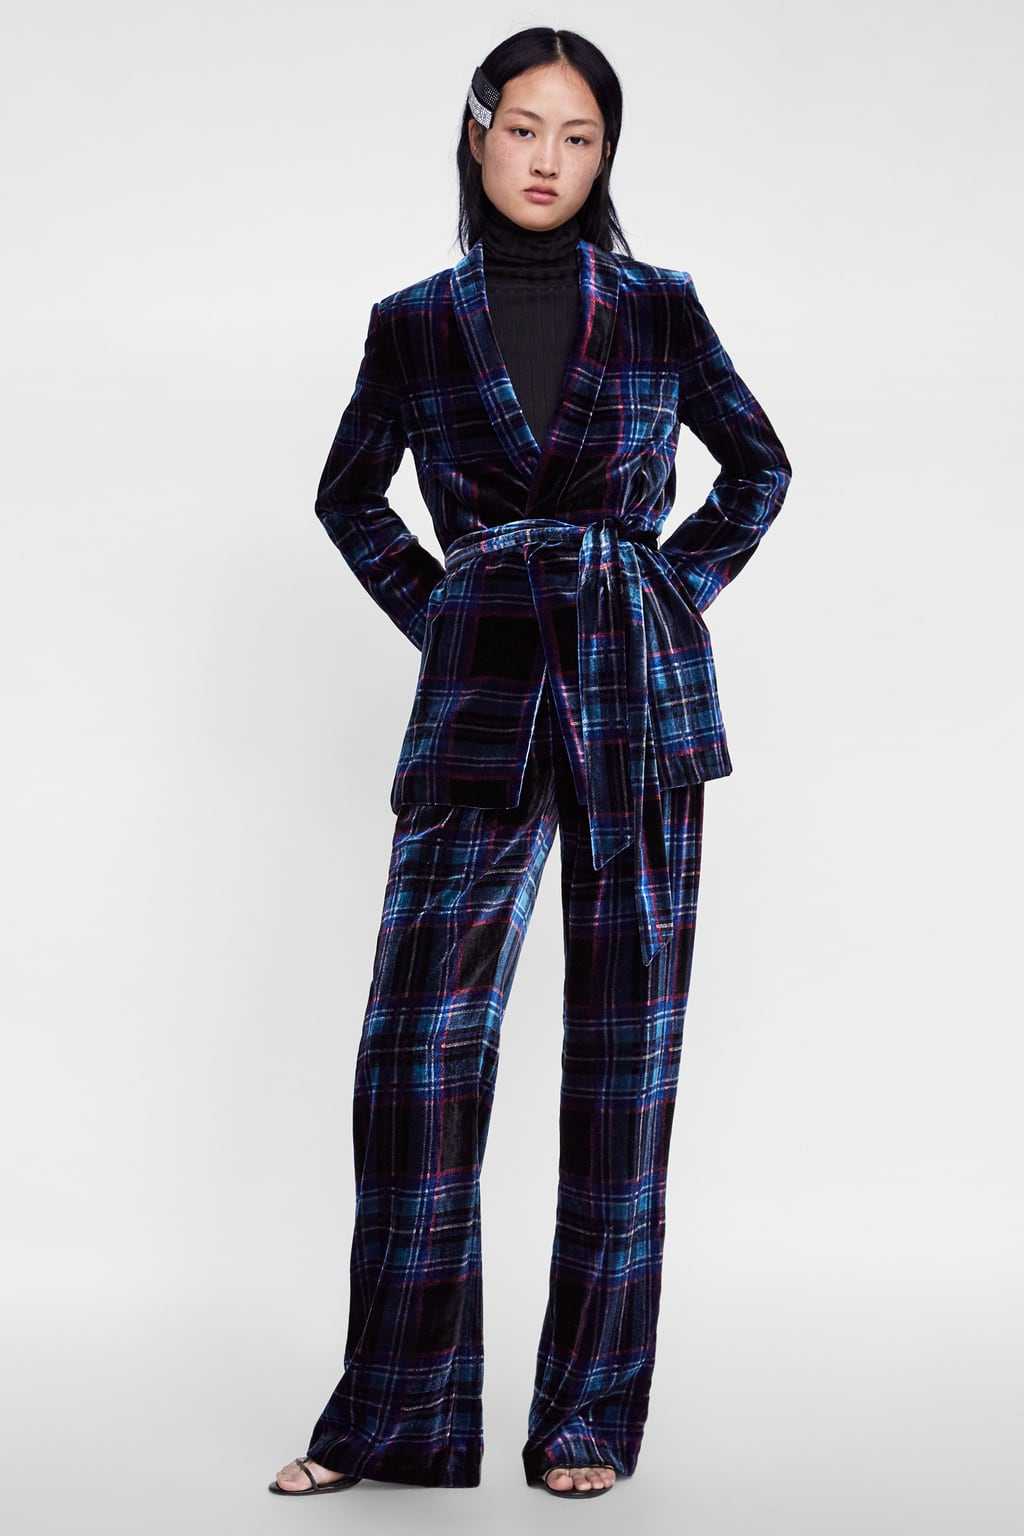 Zara Plaid Velvet Suit.jpg